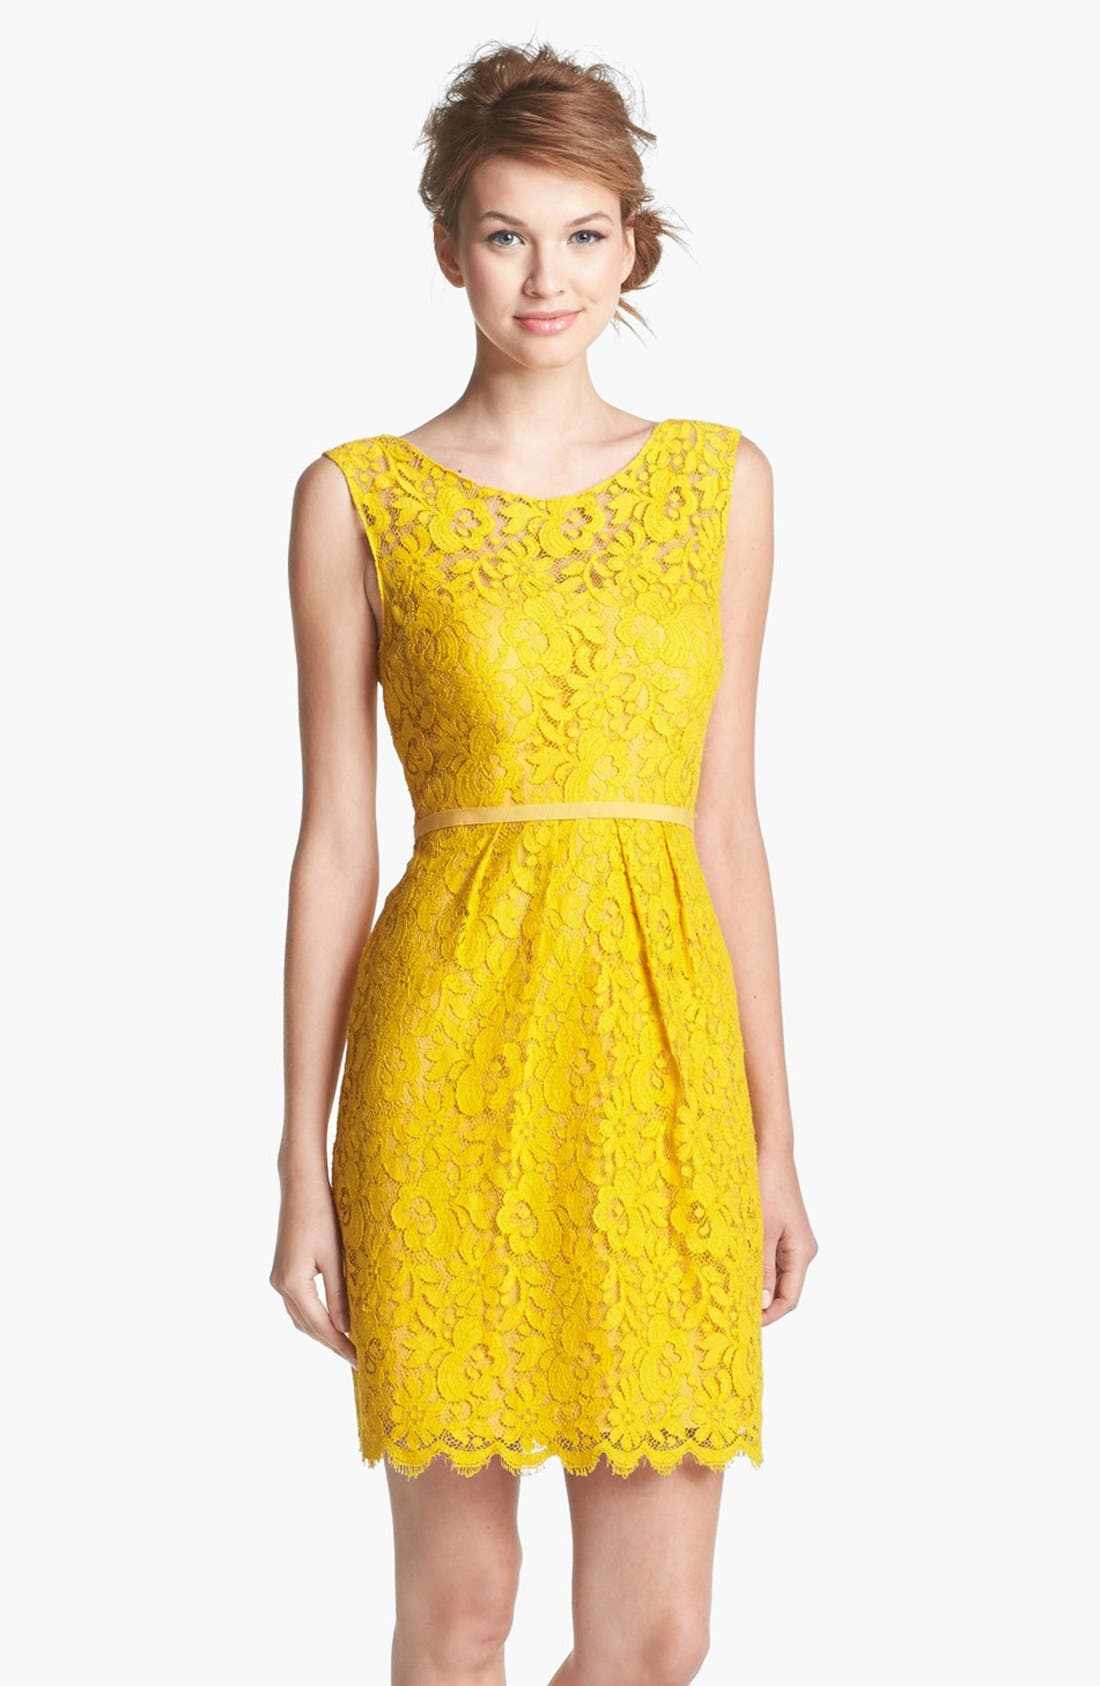 Main Image - Jenny Yoo 'Harlow' Tea Lace Sheath Dress (Online Only)